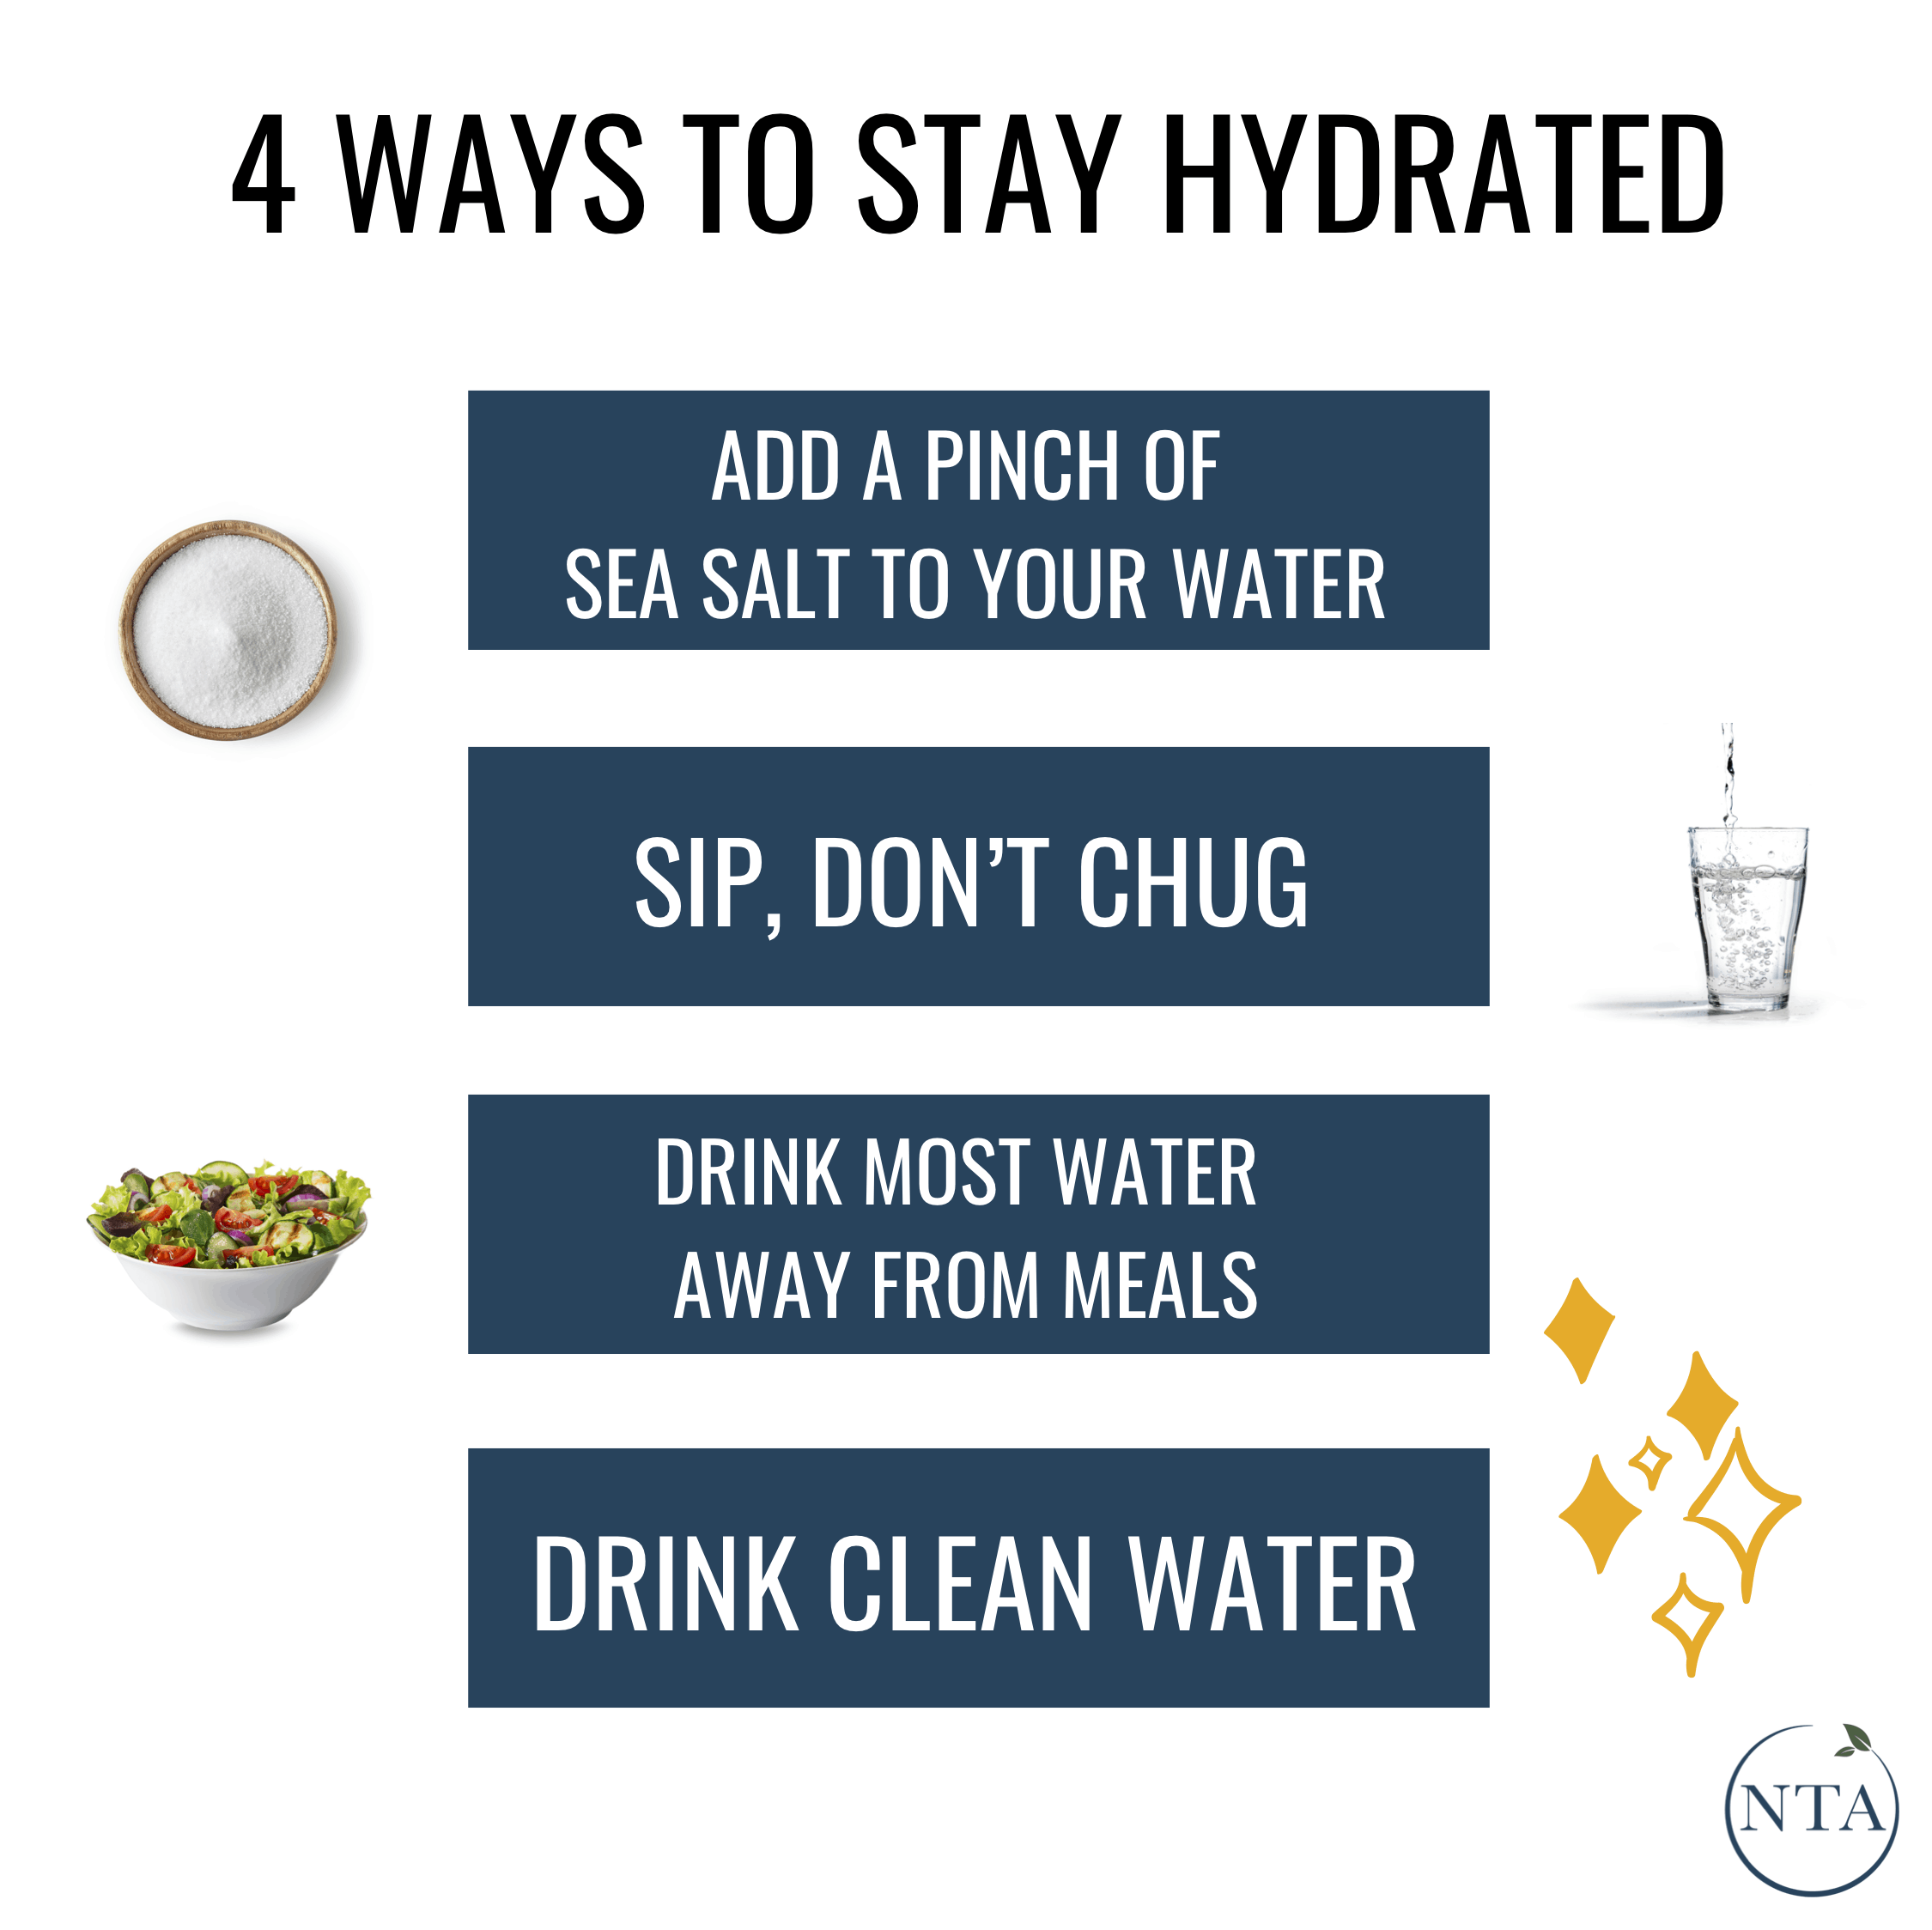 4 Ways To Stay Hydrated